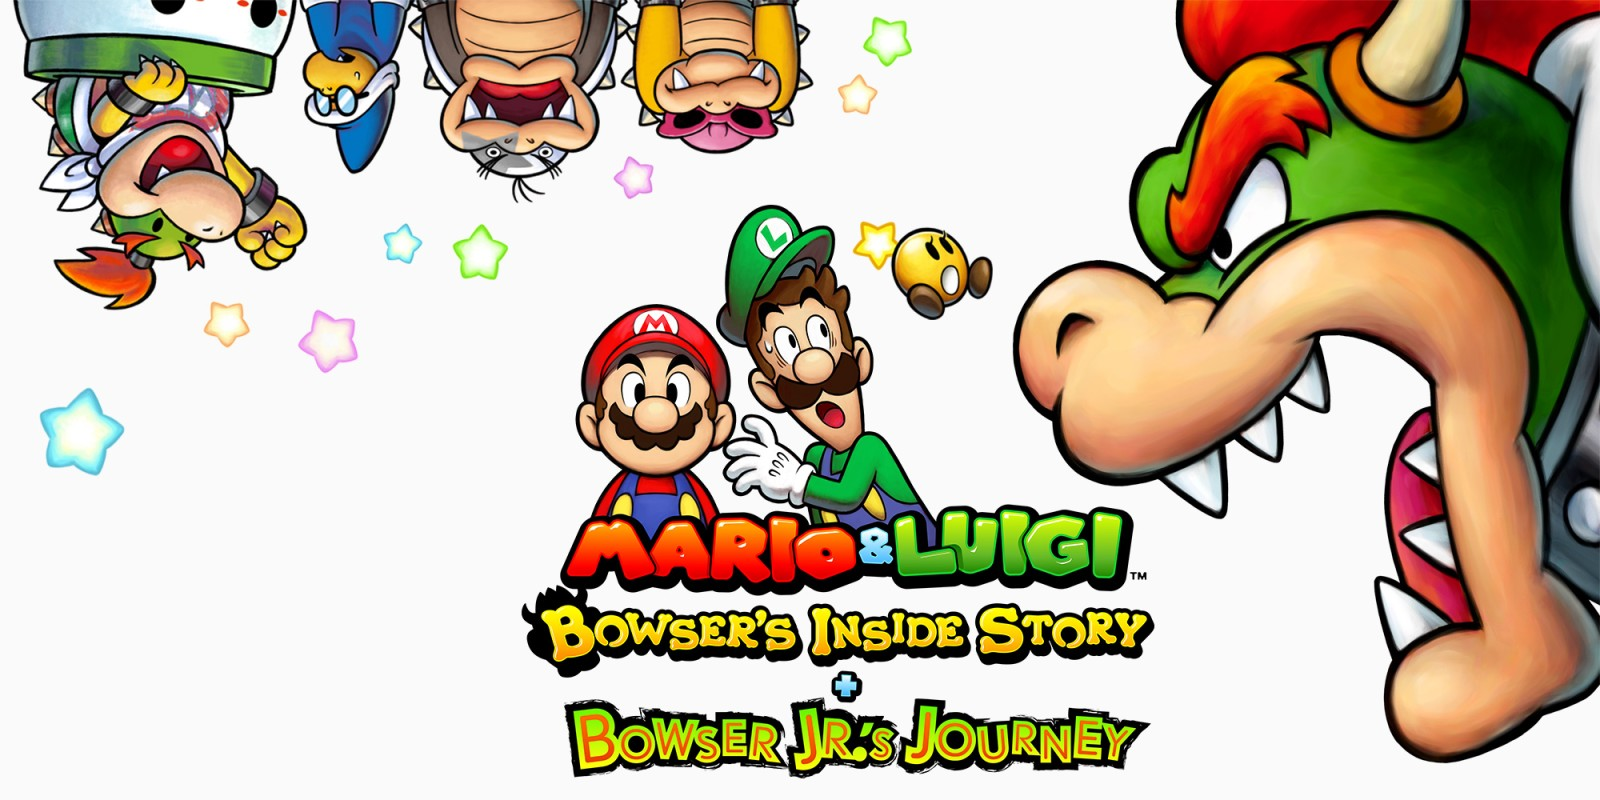 Mario & Luigi: Bowser's Inside Story + Bowser Jr's Journey